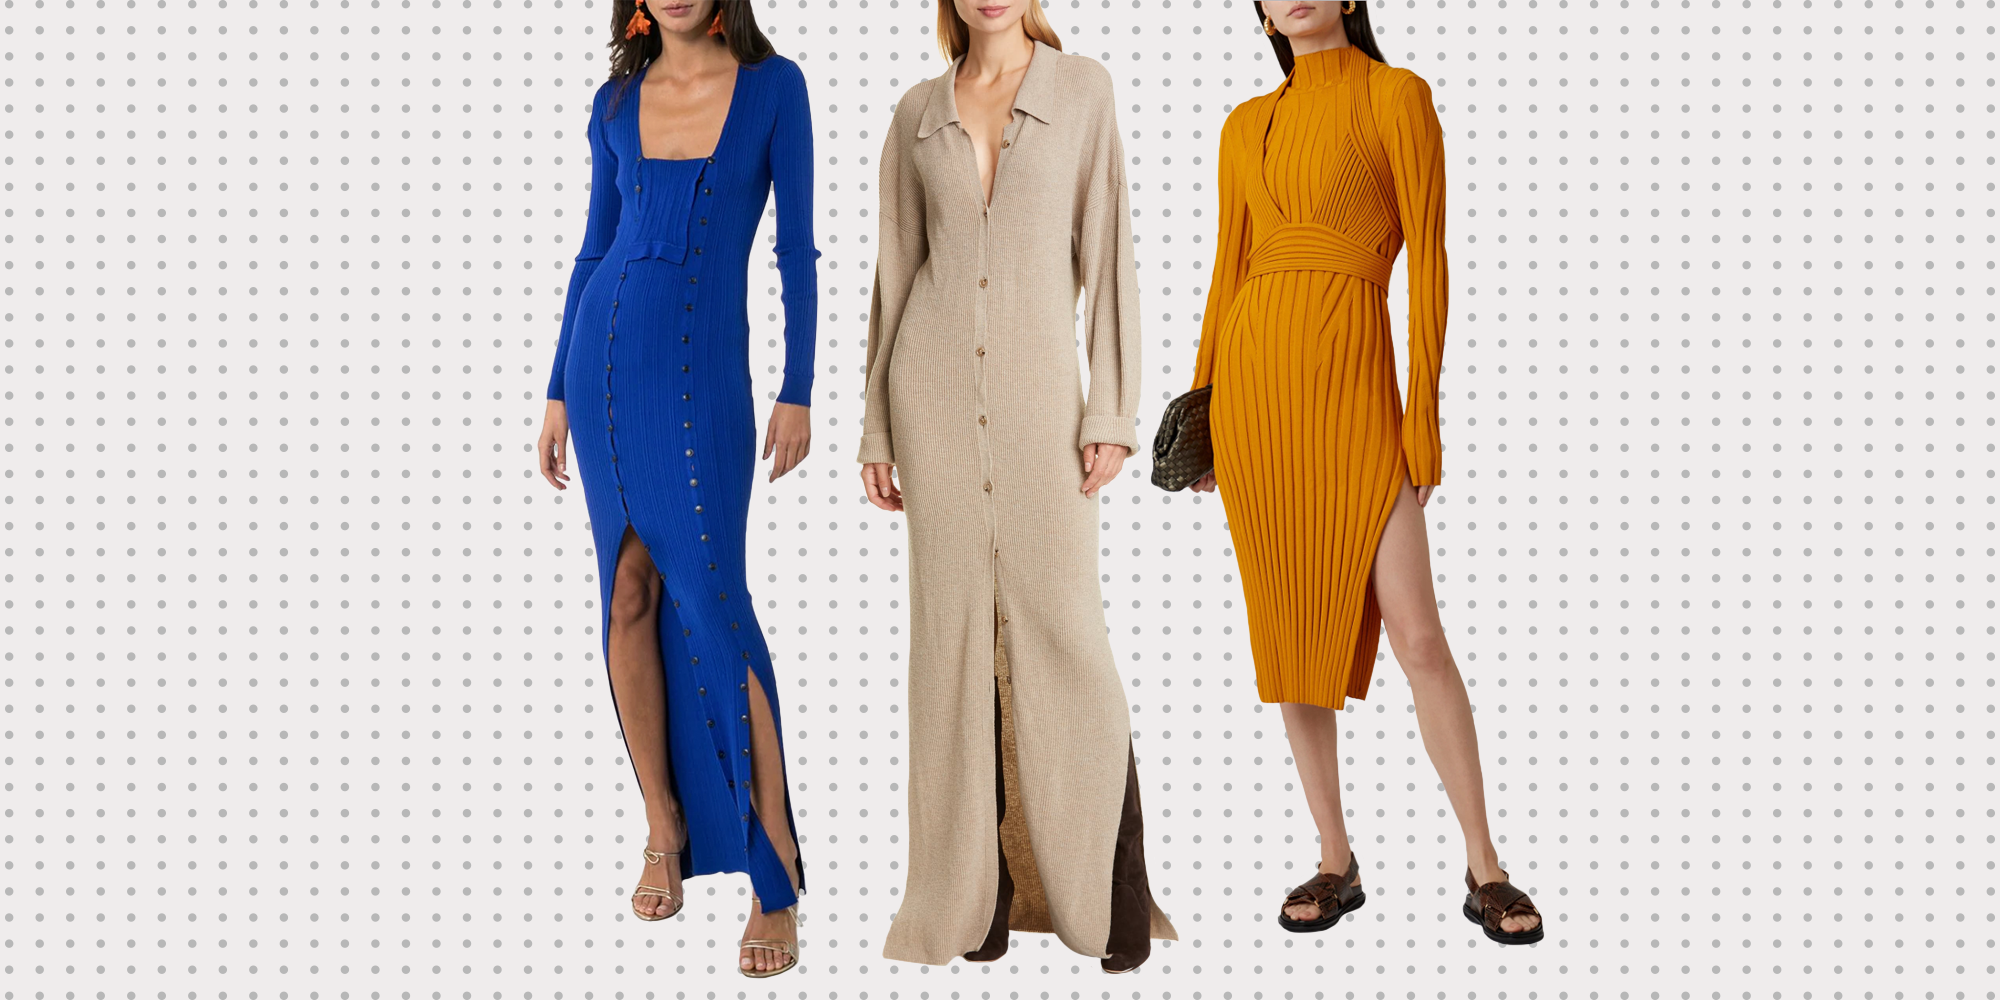 These Knit Dresses Will Complete Your Fall Wardrobe